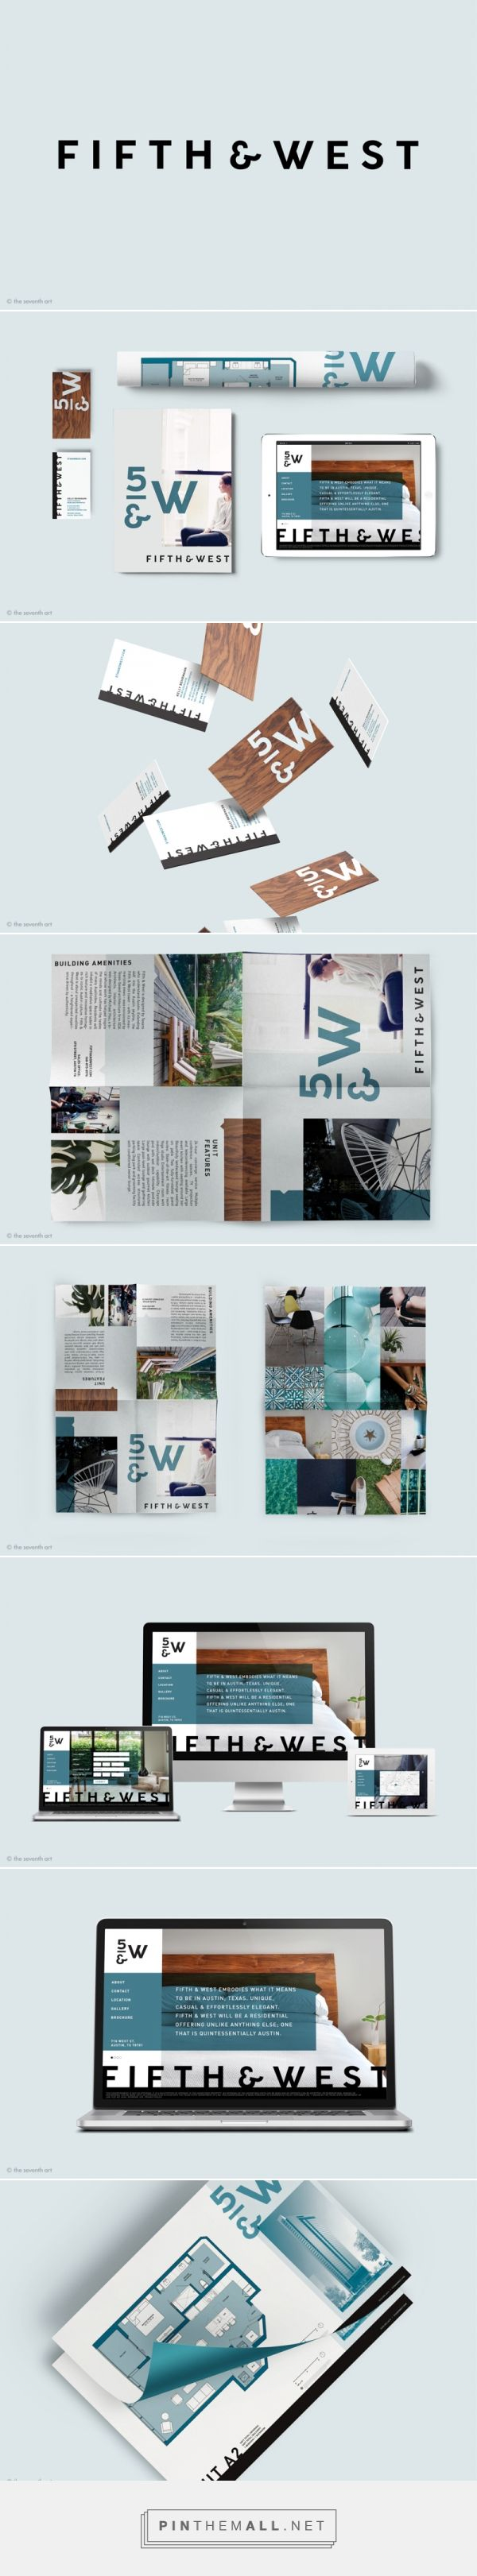 Fifth & West Residential Building Brand by The Seventh Art LLC | Fivestar Branding – Design and Branding Agency & Inspiration Gallery